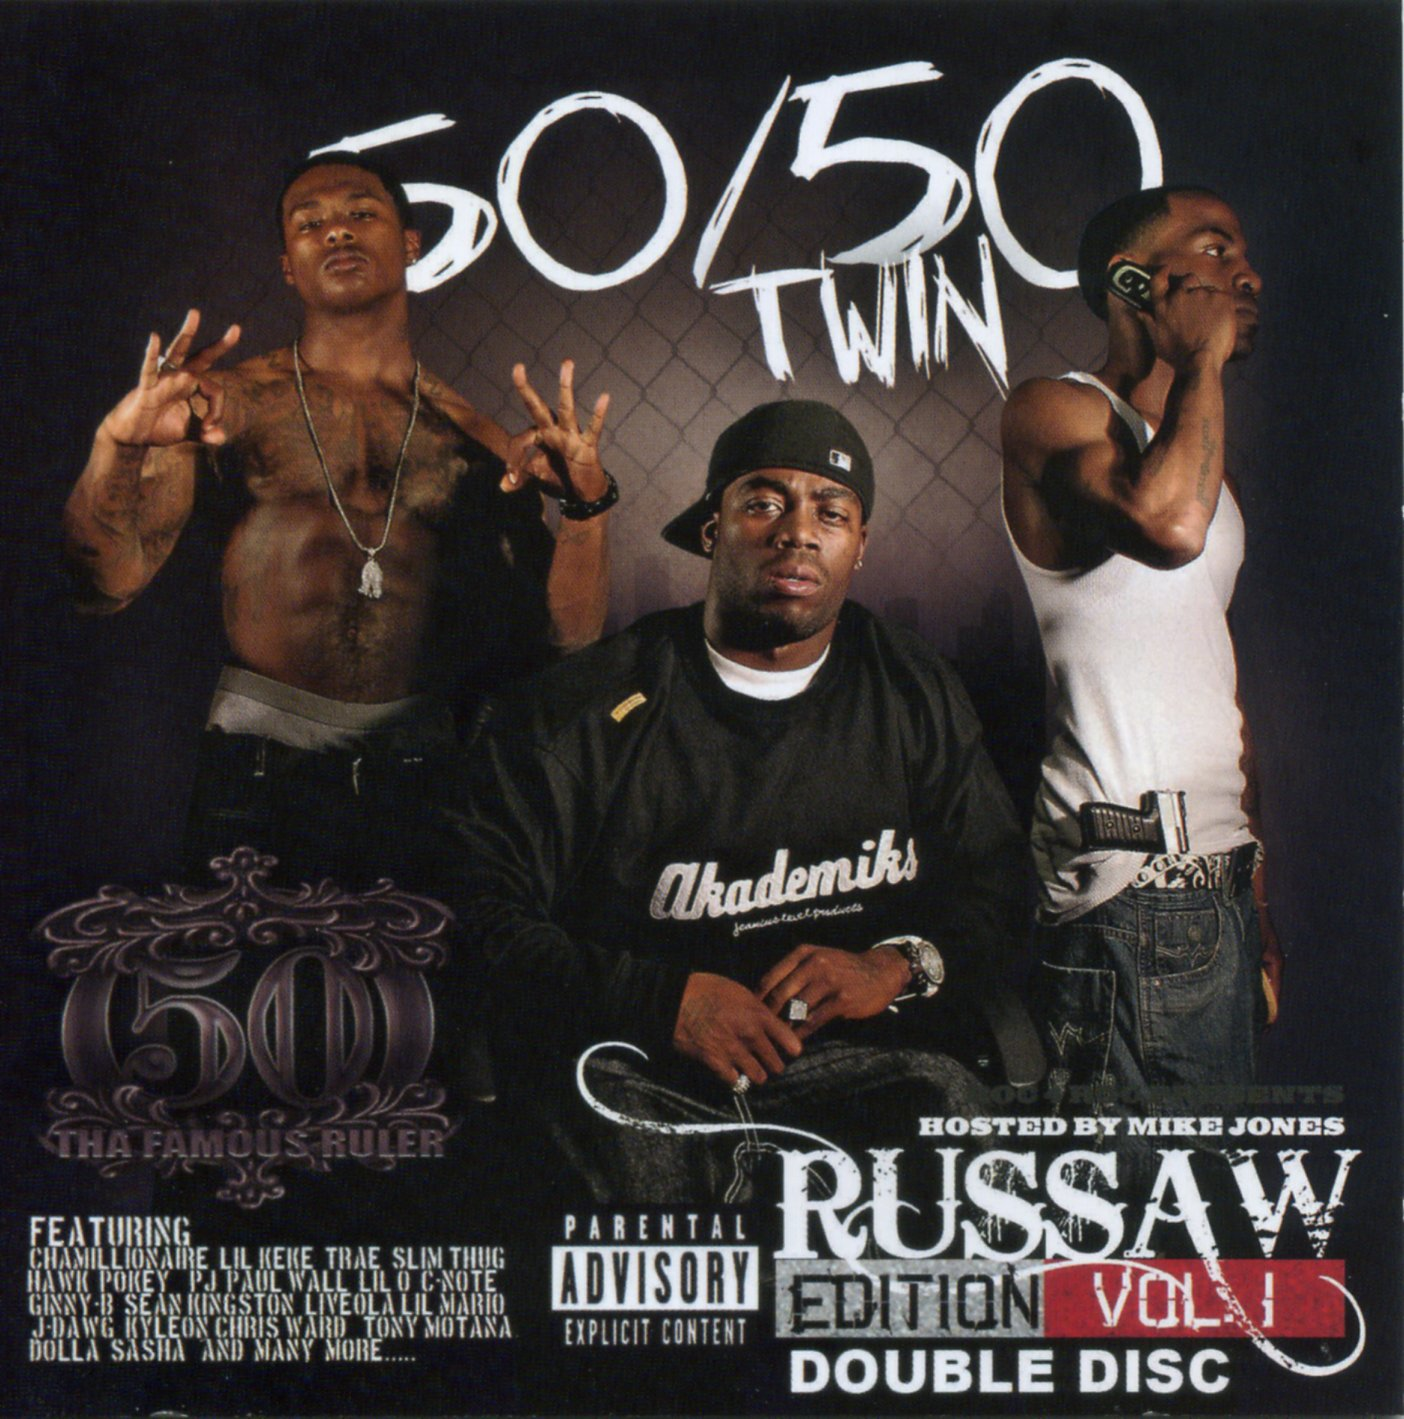 50/50 Twin - Russaw Edition Vol. 1 (Hosted by Mike Jones)